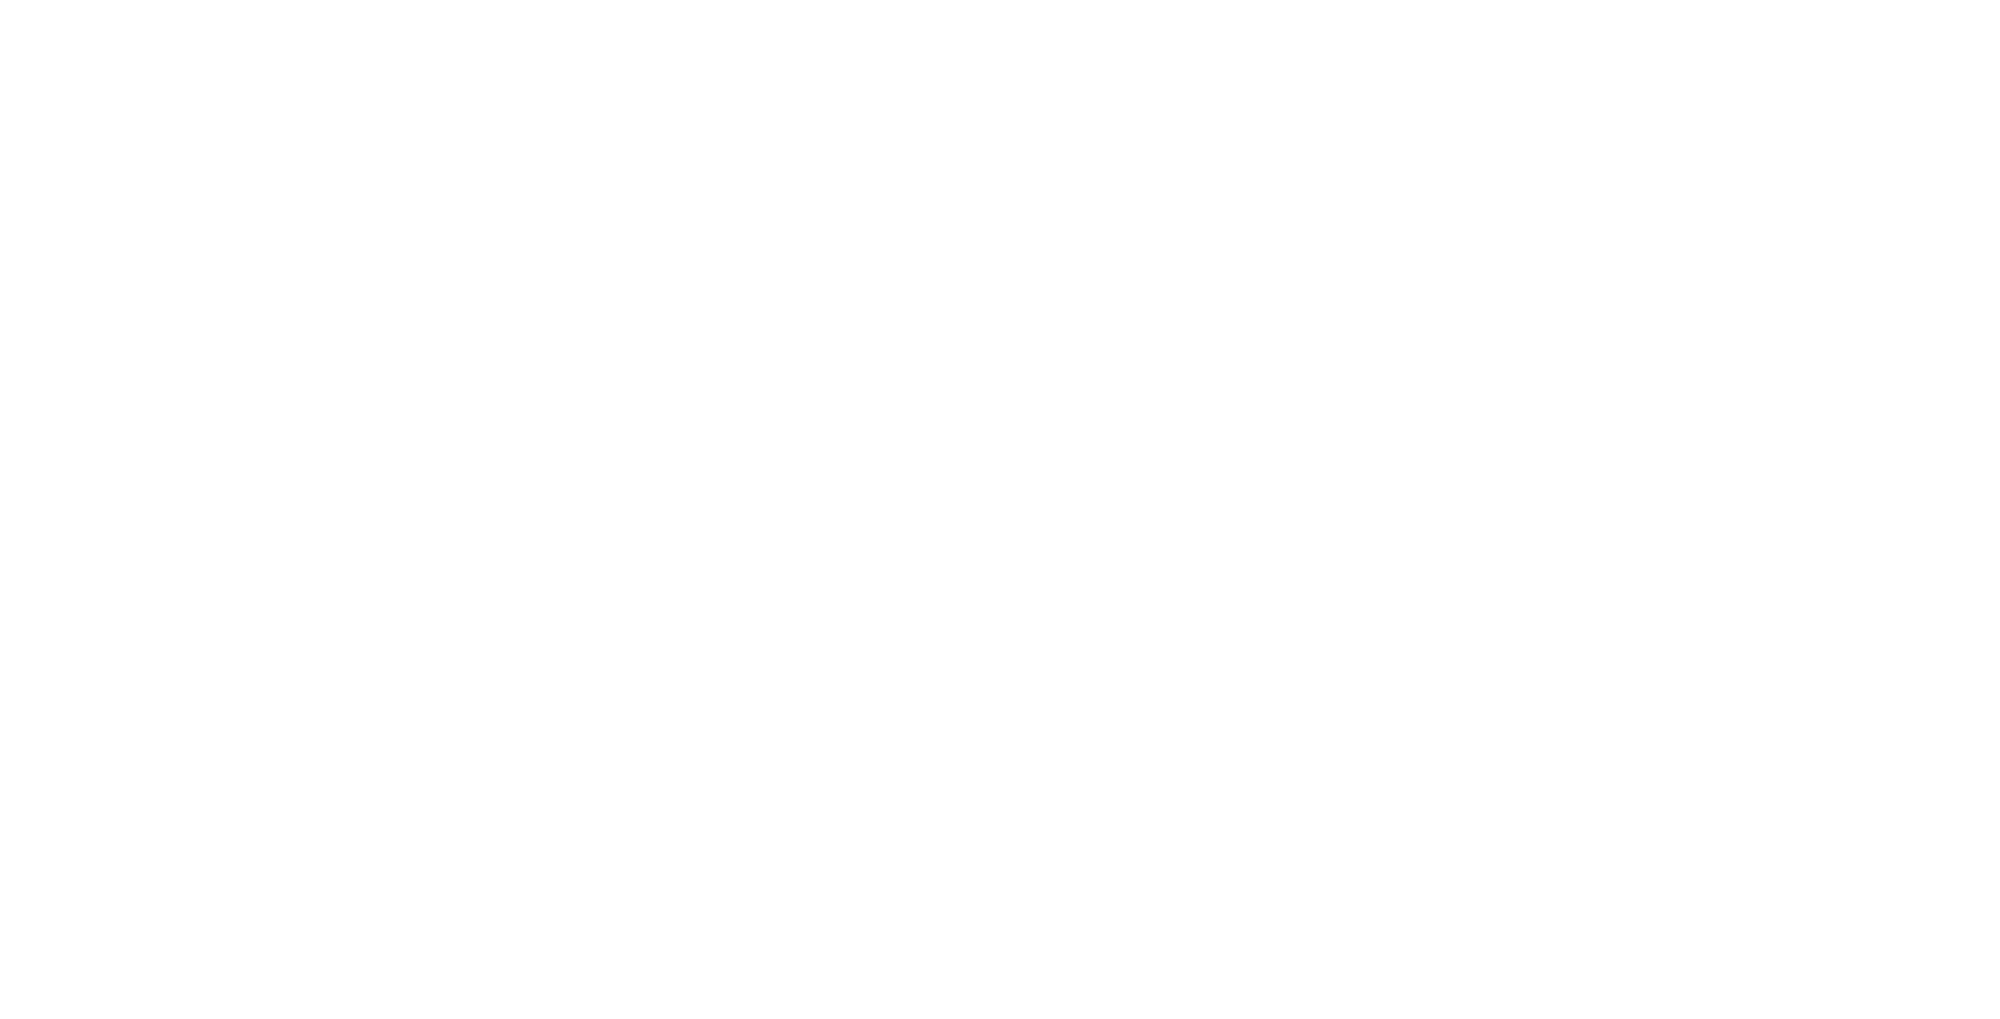 Prolody-logo-white.png